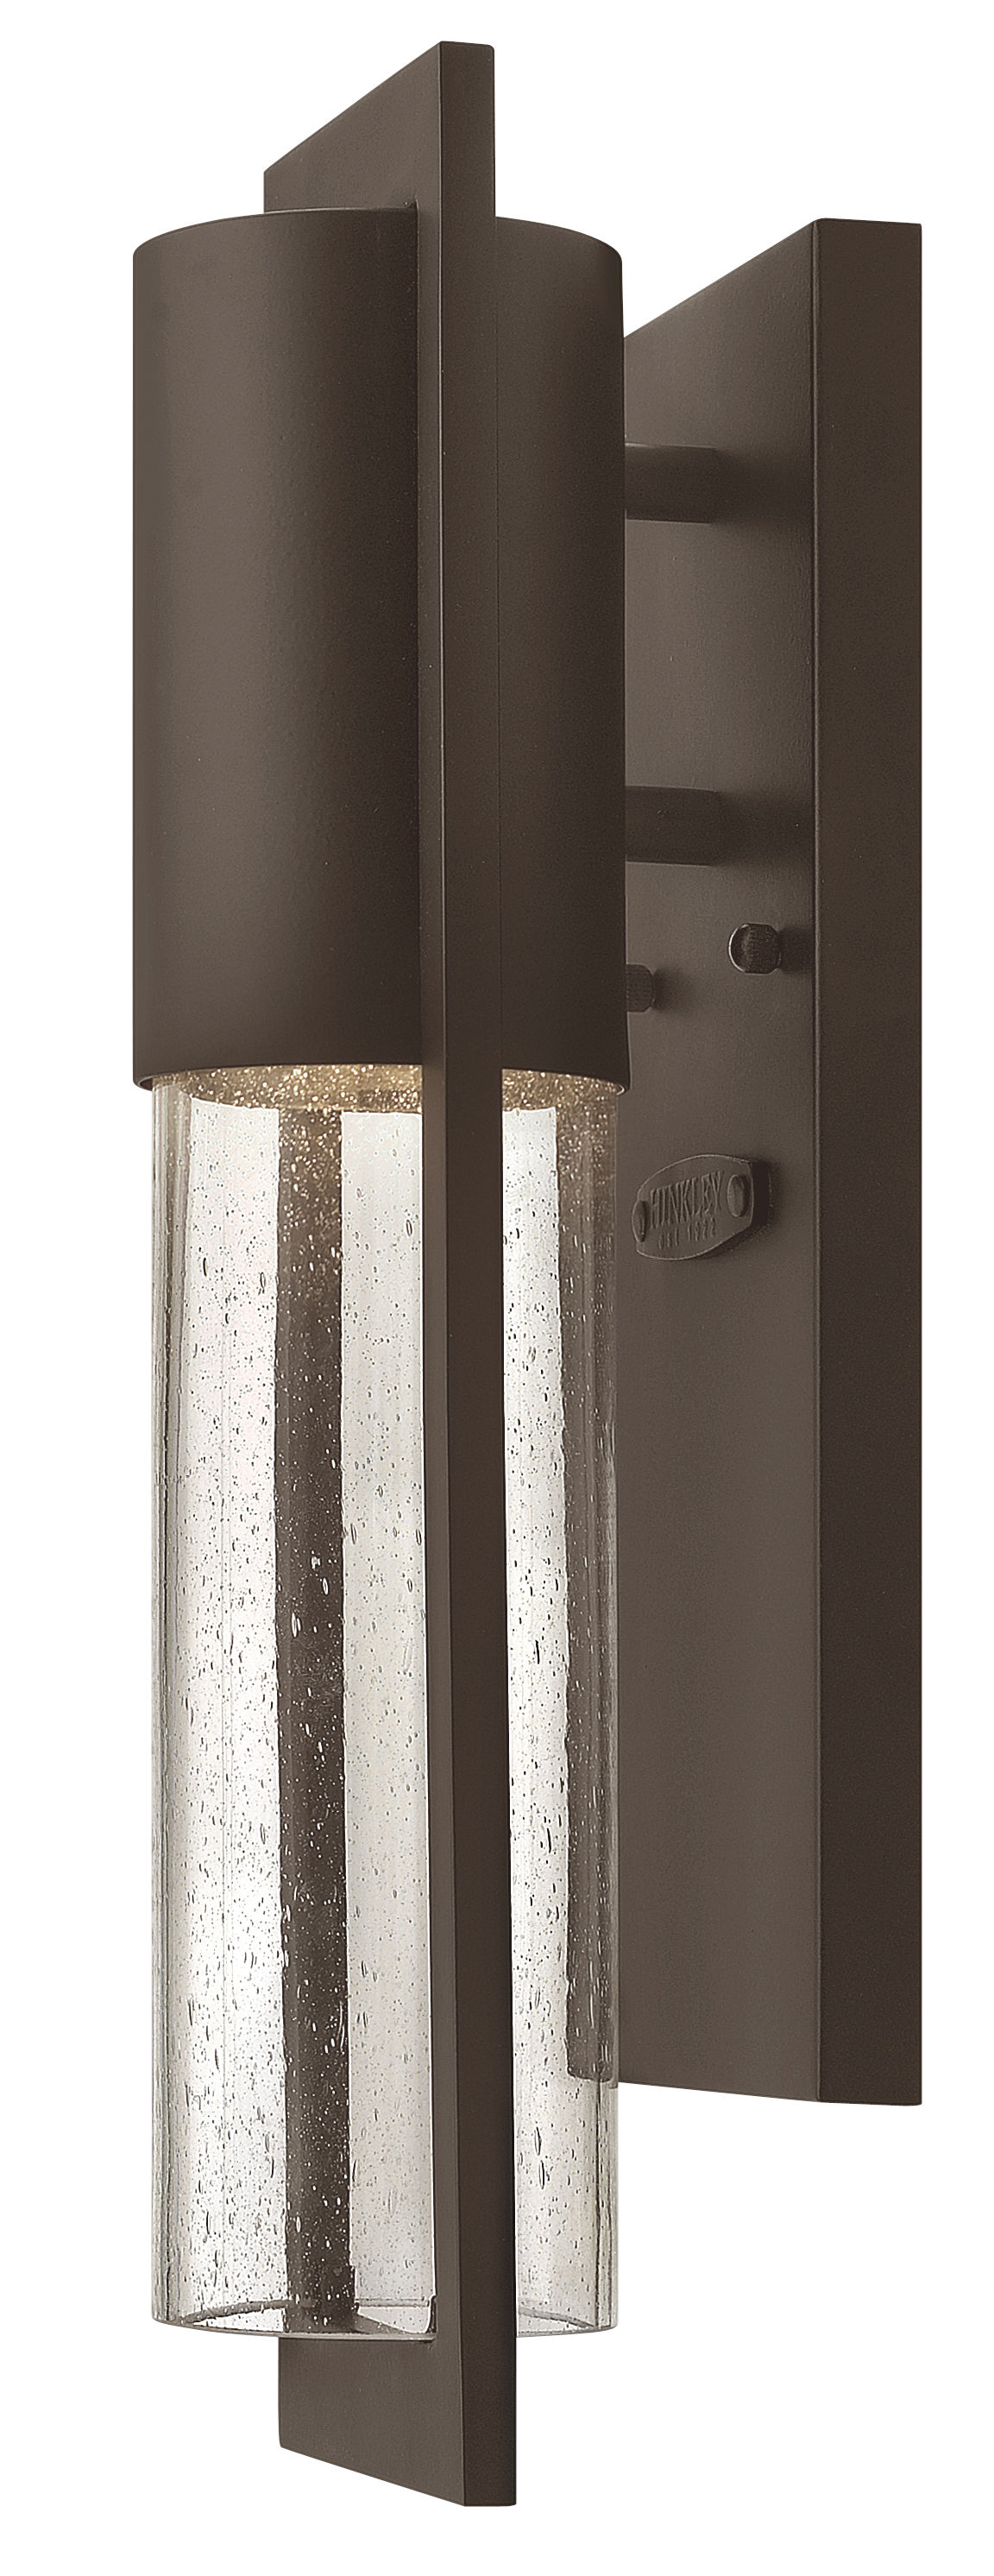 Hinkley lighting 1326bk black 155 height 1 light dark sky hinkley lighting 1326bk black 155 height 1 light dark sky outdoor wall sconce from the shelter collection mozeypictures Images